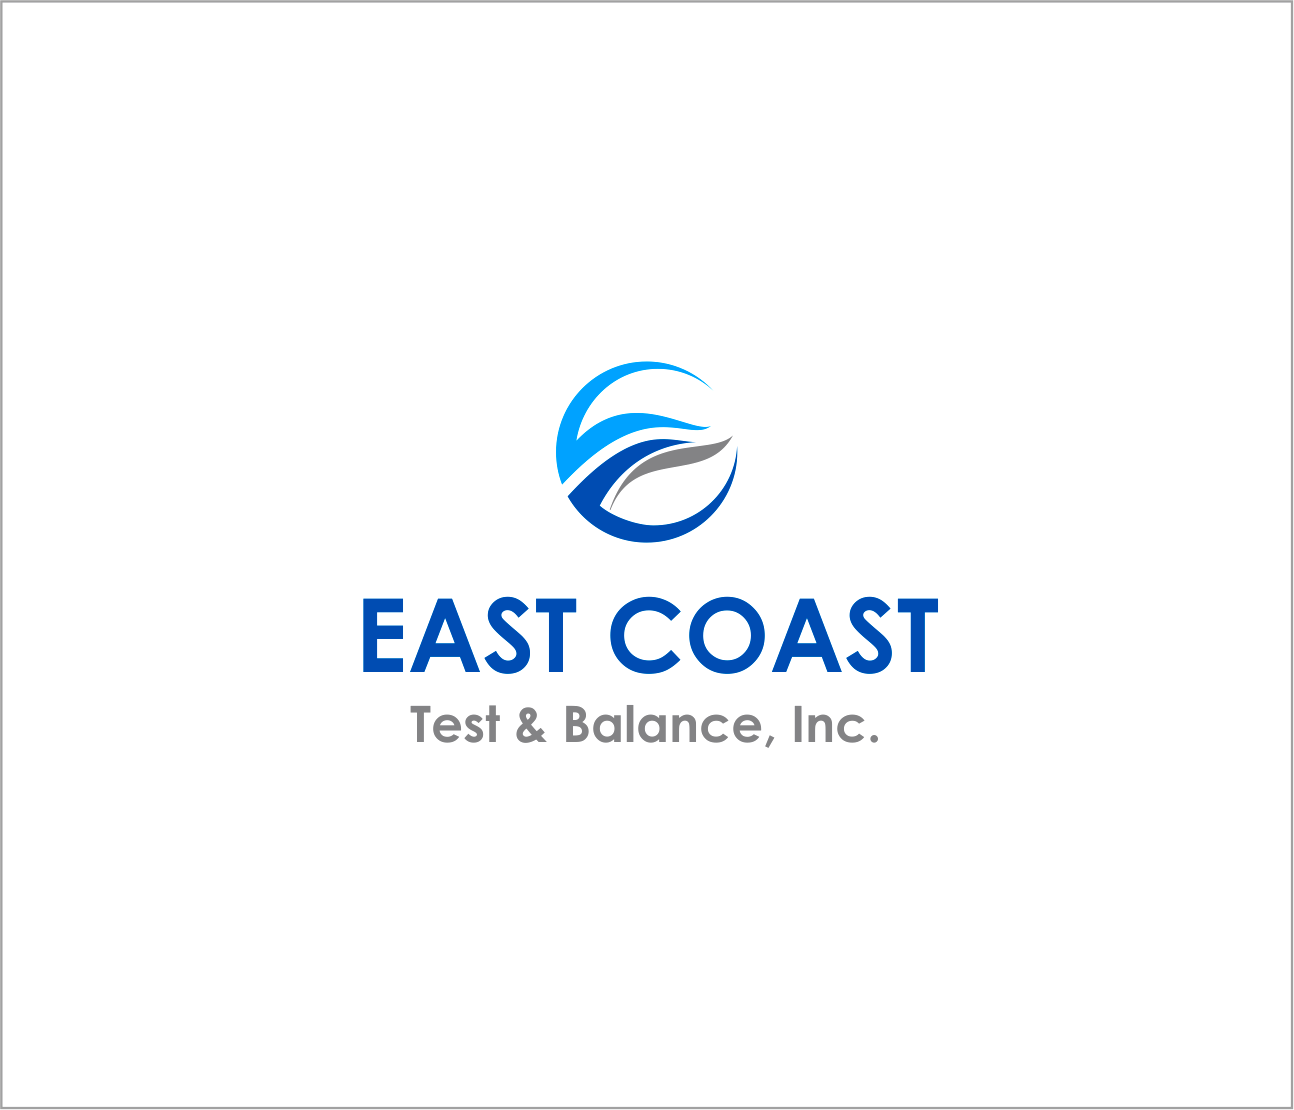 logo design contests » logo design for east coast test & balance